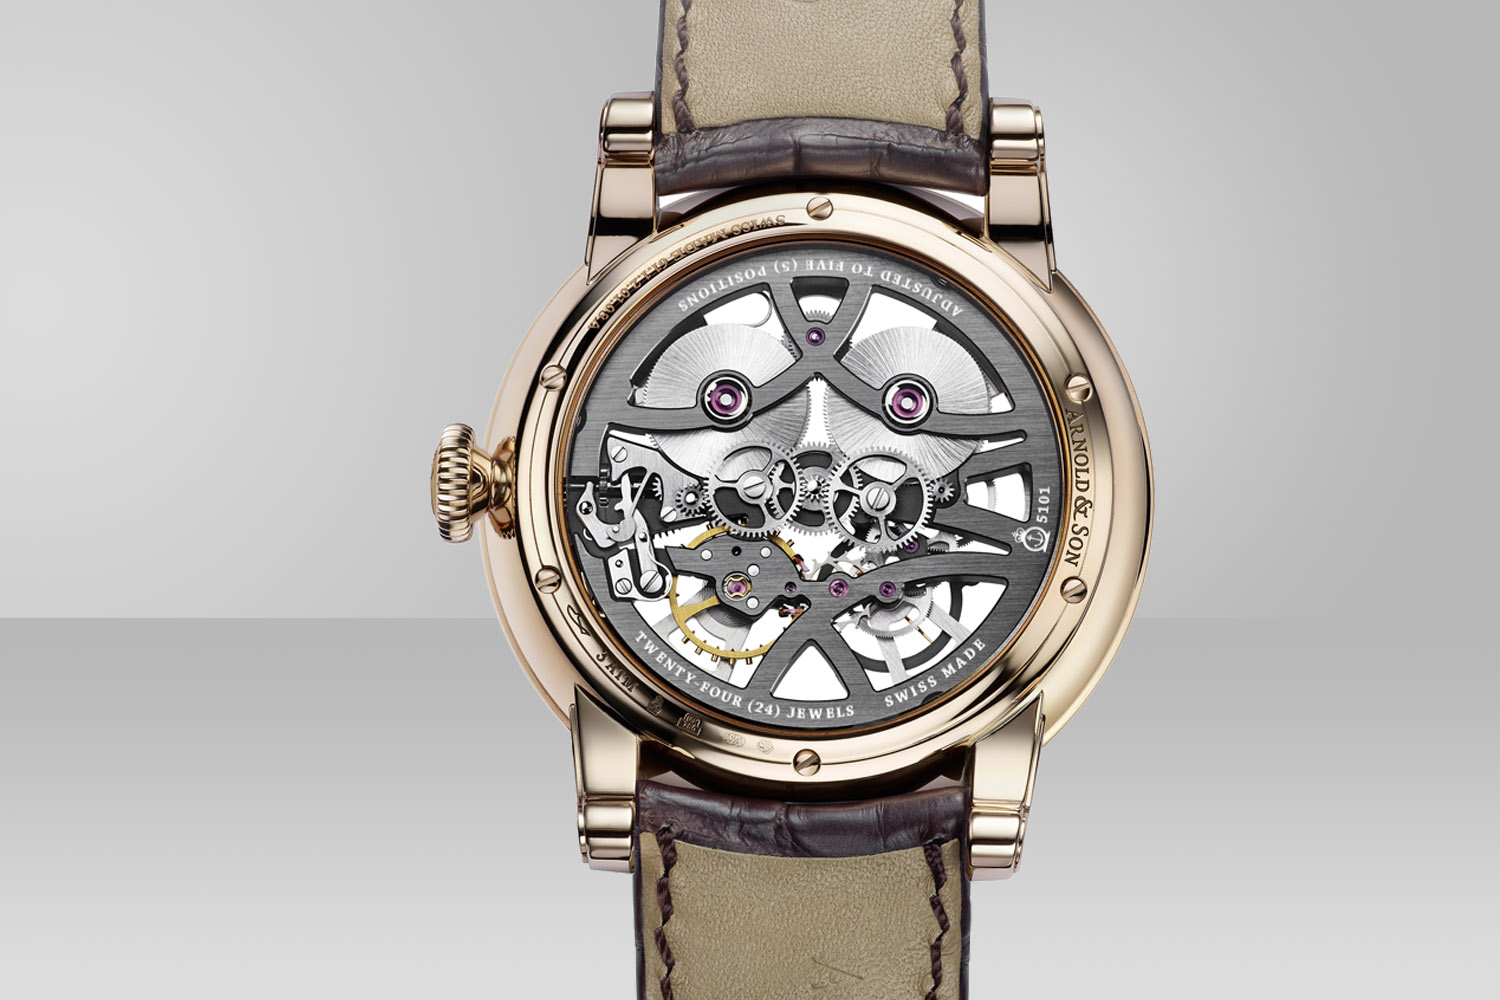 The back of the watch is just as alluring as the front